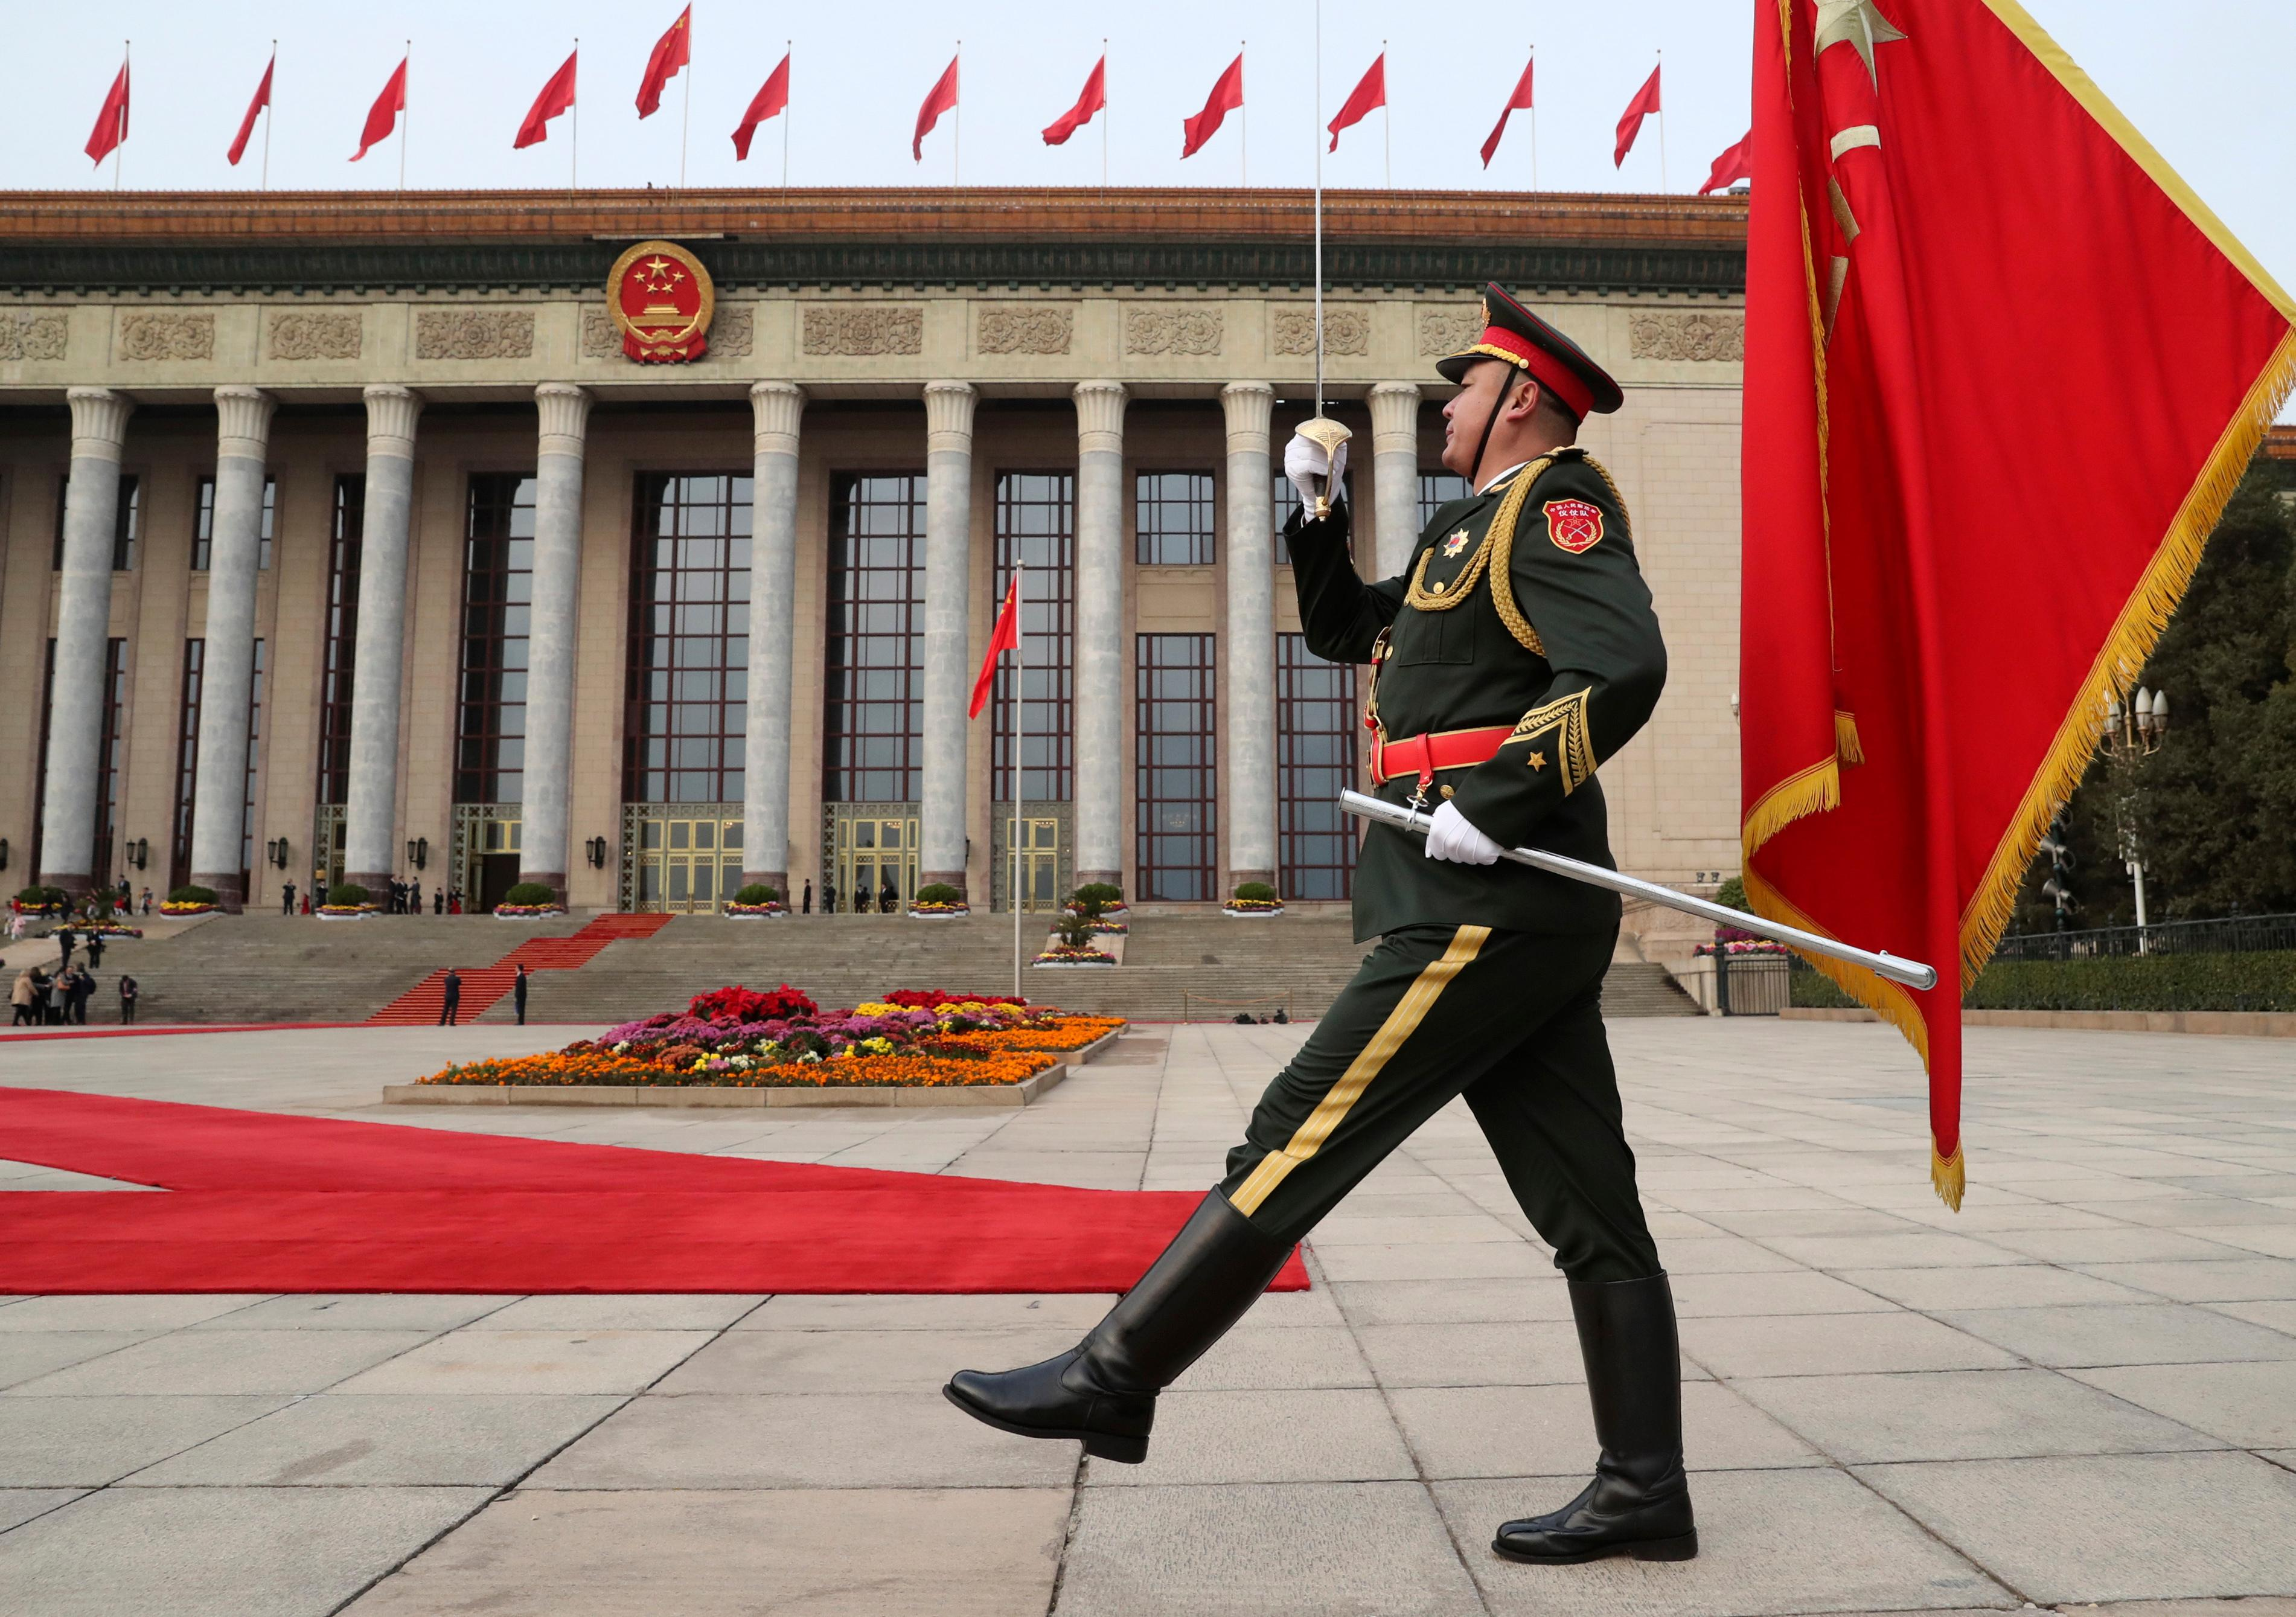 FILE - In this Nov. 9, 2017, file photo, a member of the Chinese military marches before the welcoming ceremony for President Donald Trump and Chinese President Xi Jinping at the Great Hall of the People, in Beijing, China. (AP Photo/Andrew Harnik, File)